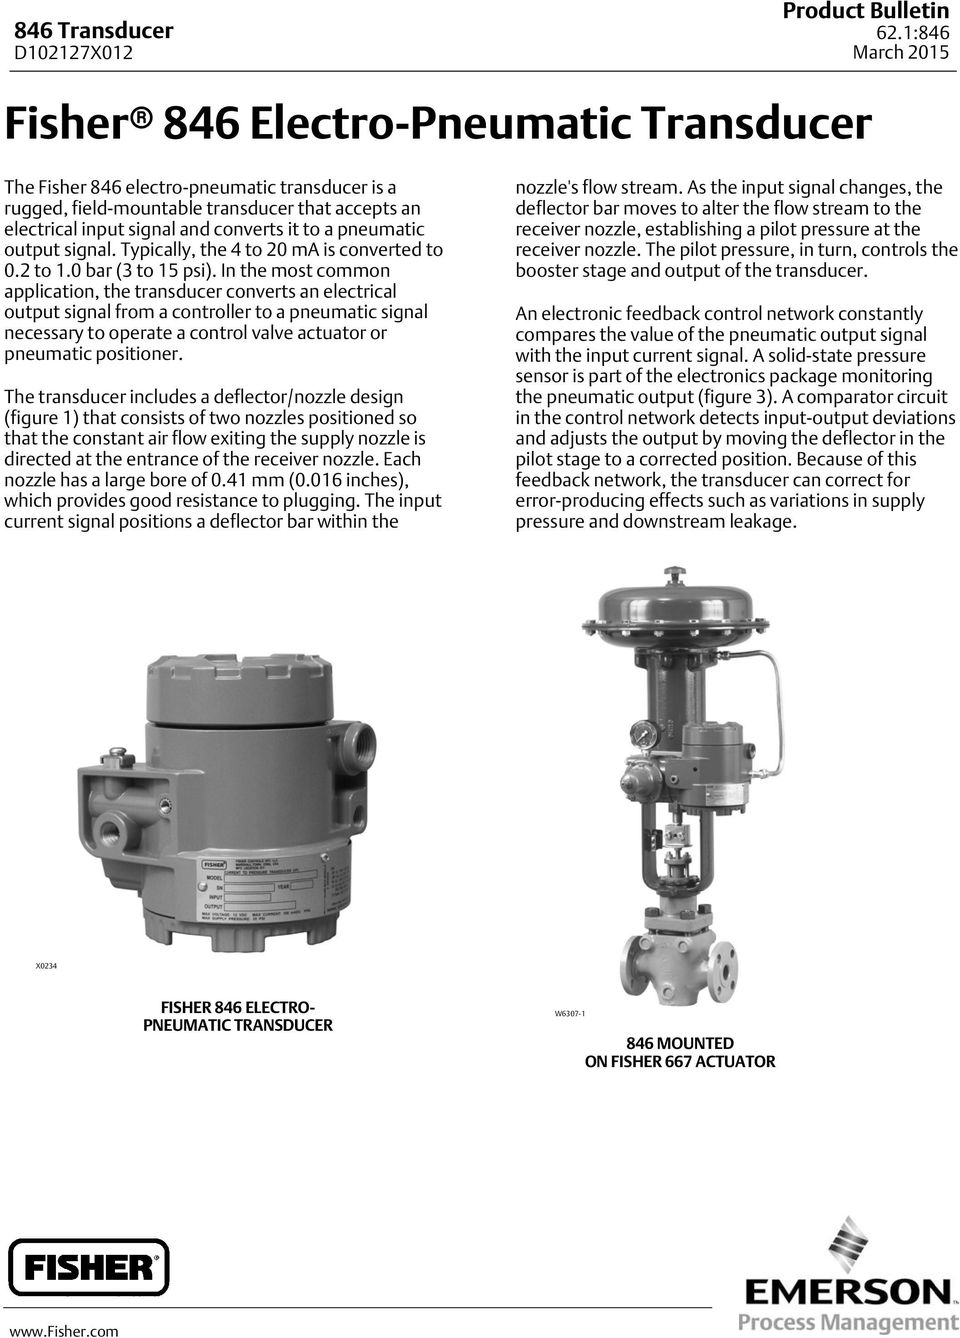 In the most common application, the transducer converts an electrical output signal from a controller to a pneumatic signal necessary to operate a control valve actuator or pneumatic positioner.